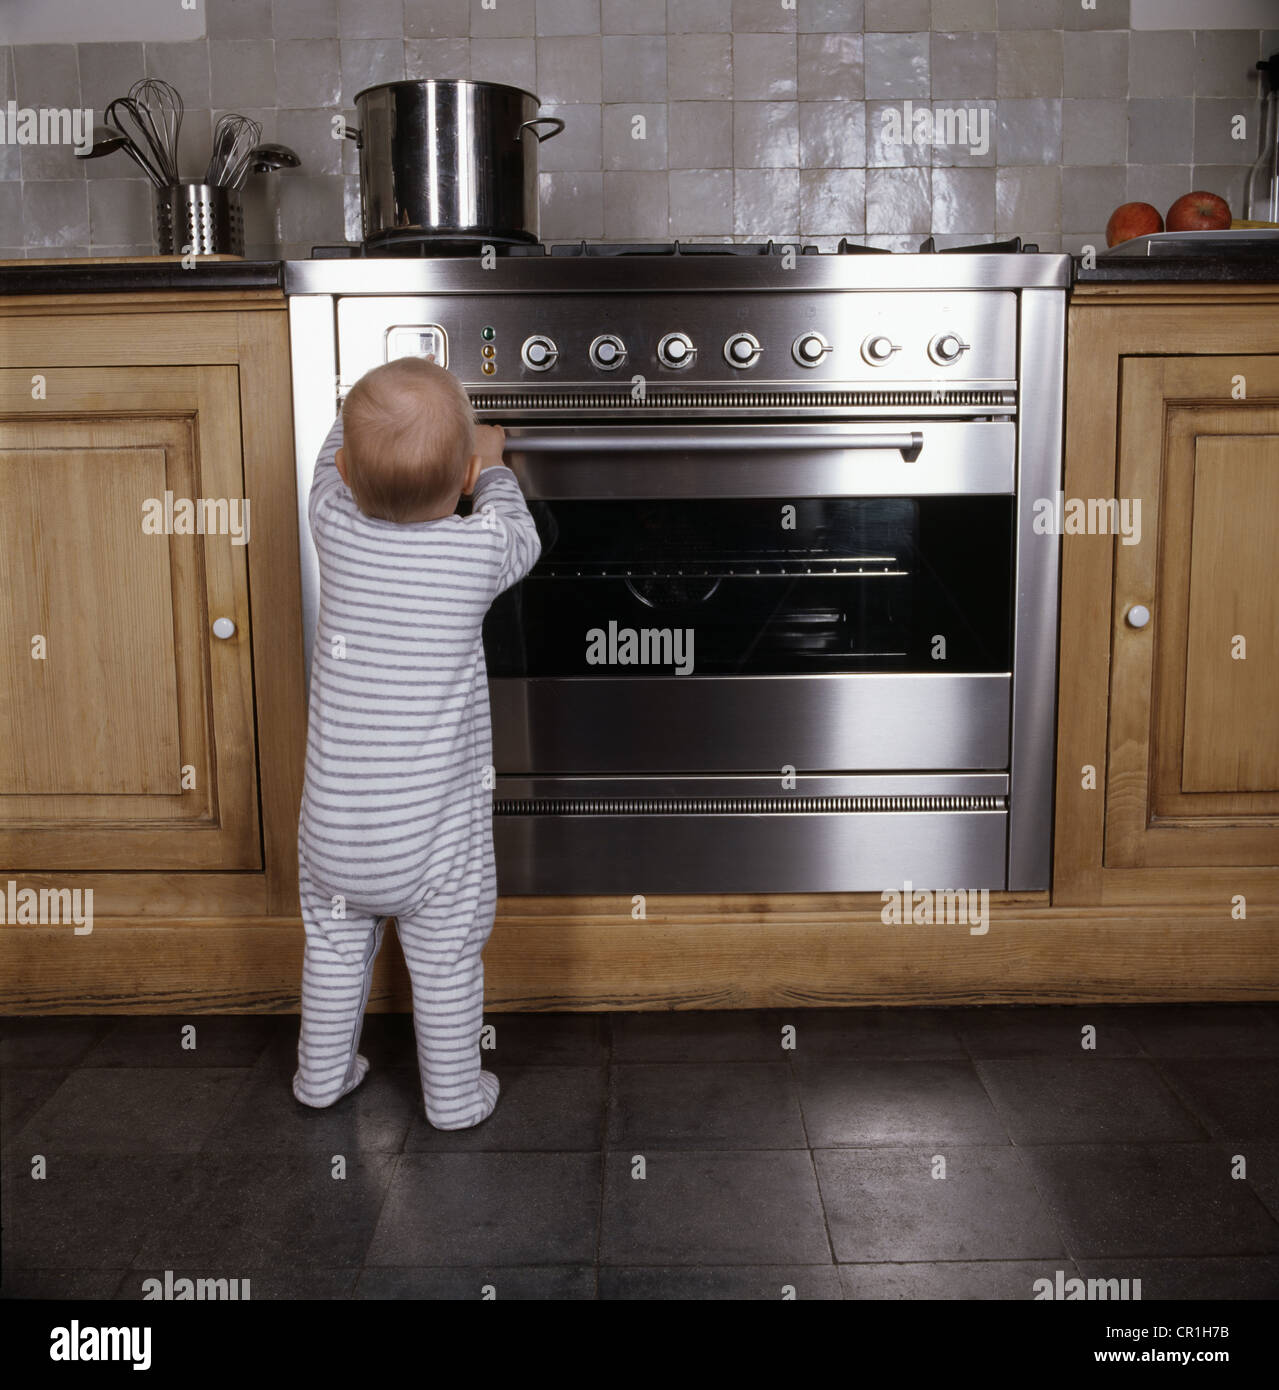 Infant standing by oven in kitchen Stock Photo